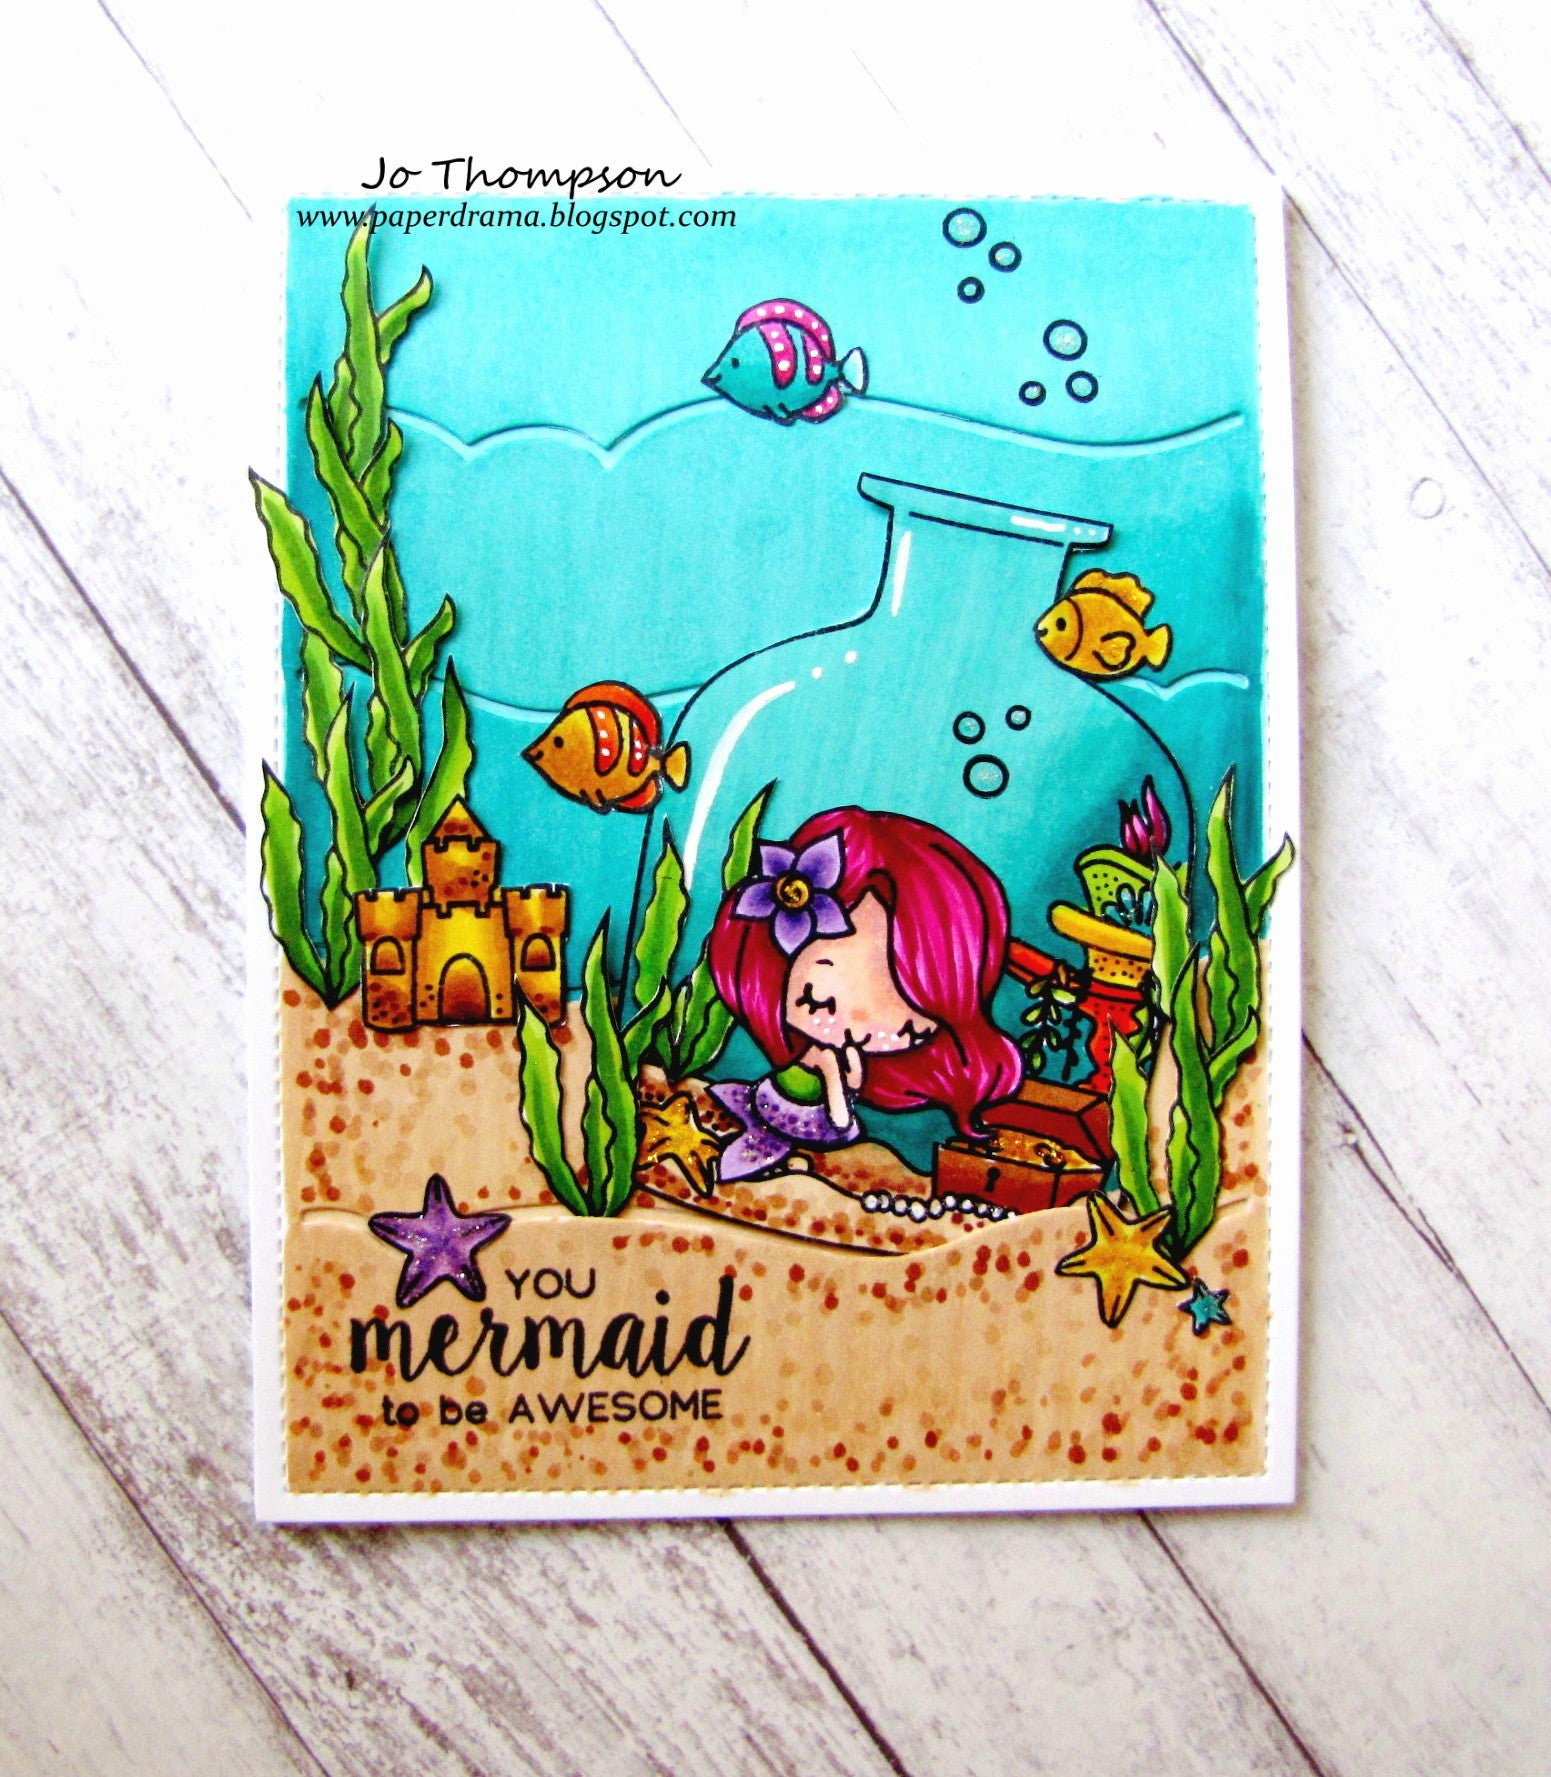 Guest Designer Jo with an AWESOME MERMAID card!